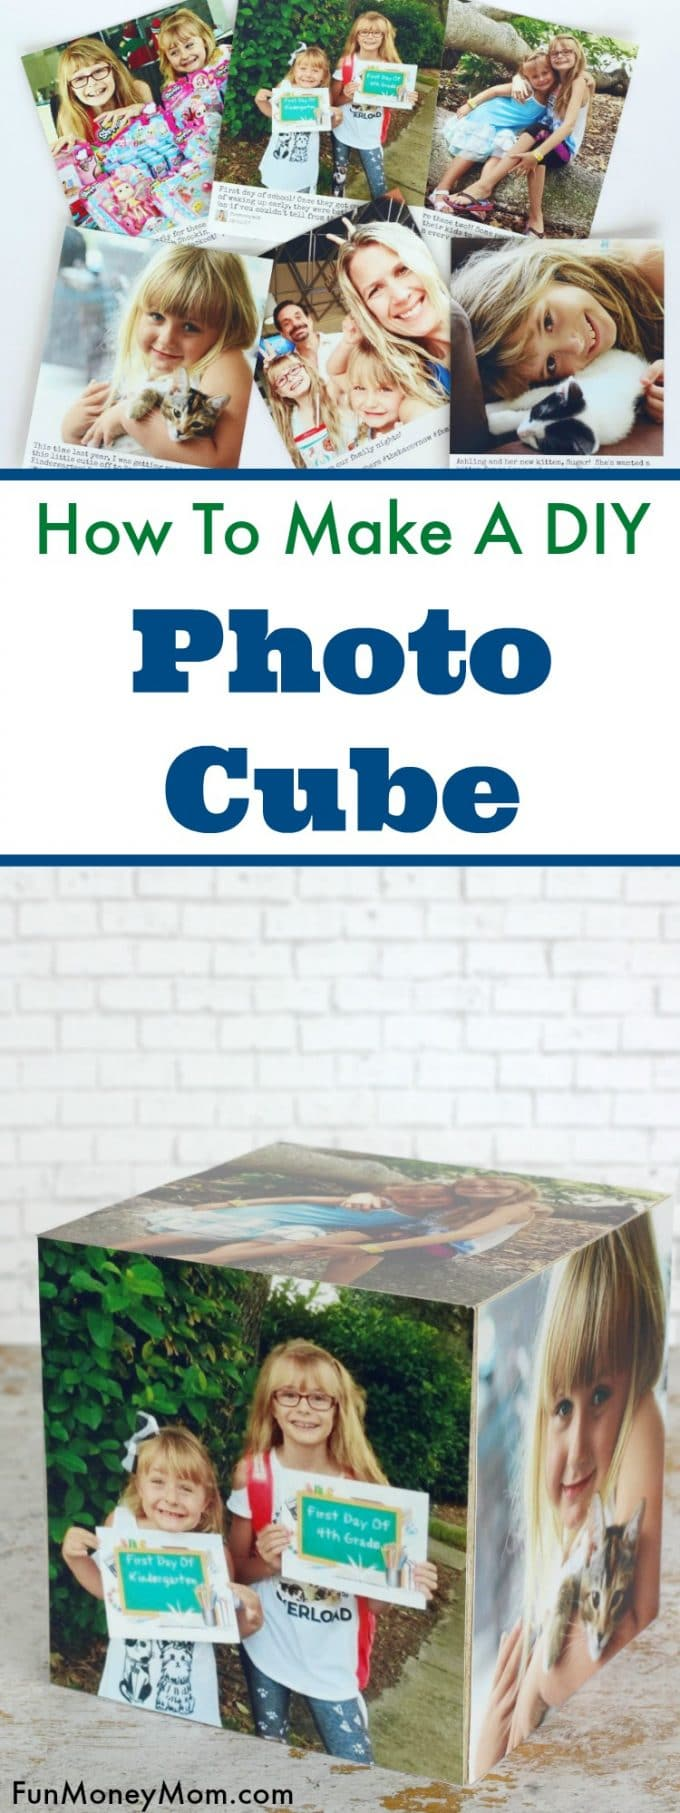 Photos always make the best home decor and this easy DIY photo cube is a fun way to display all your favorite family photos.